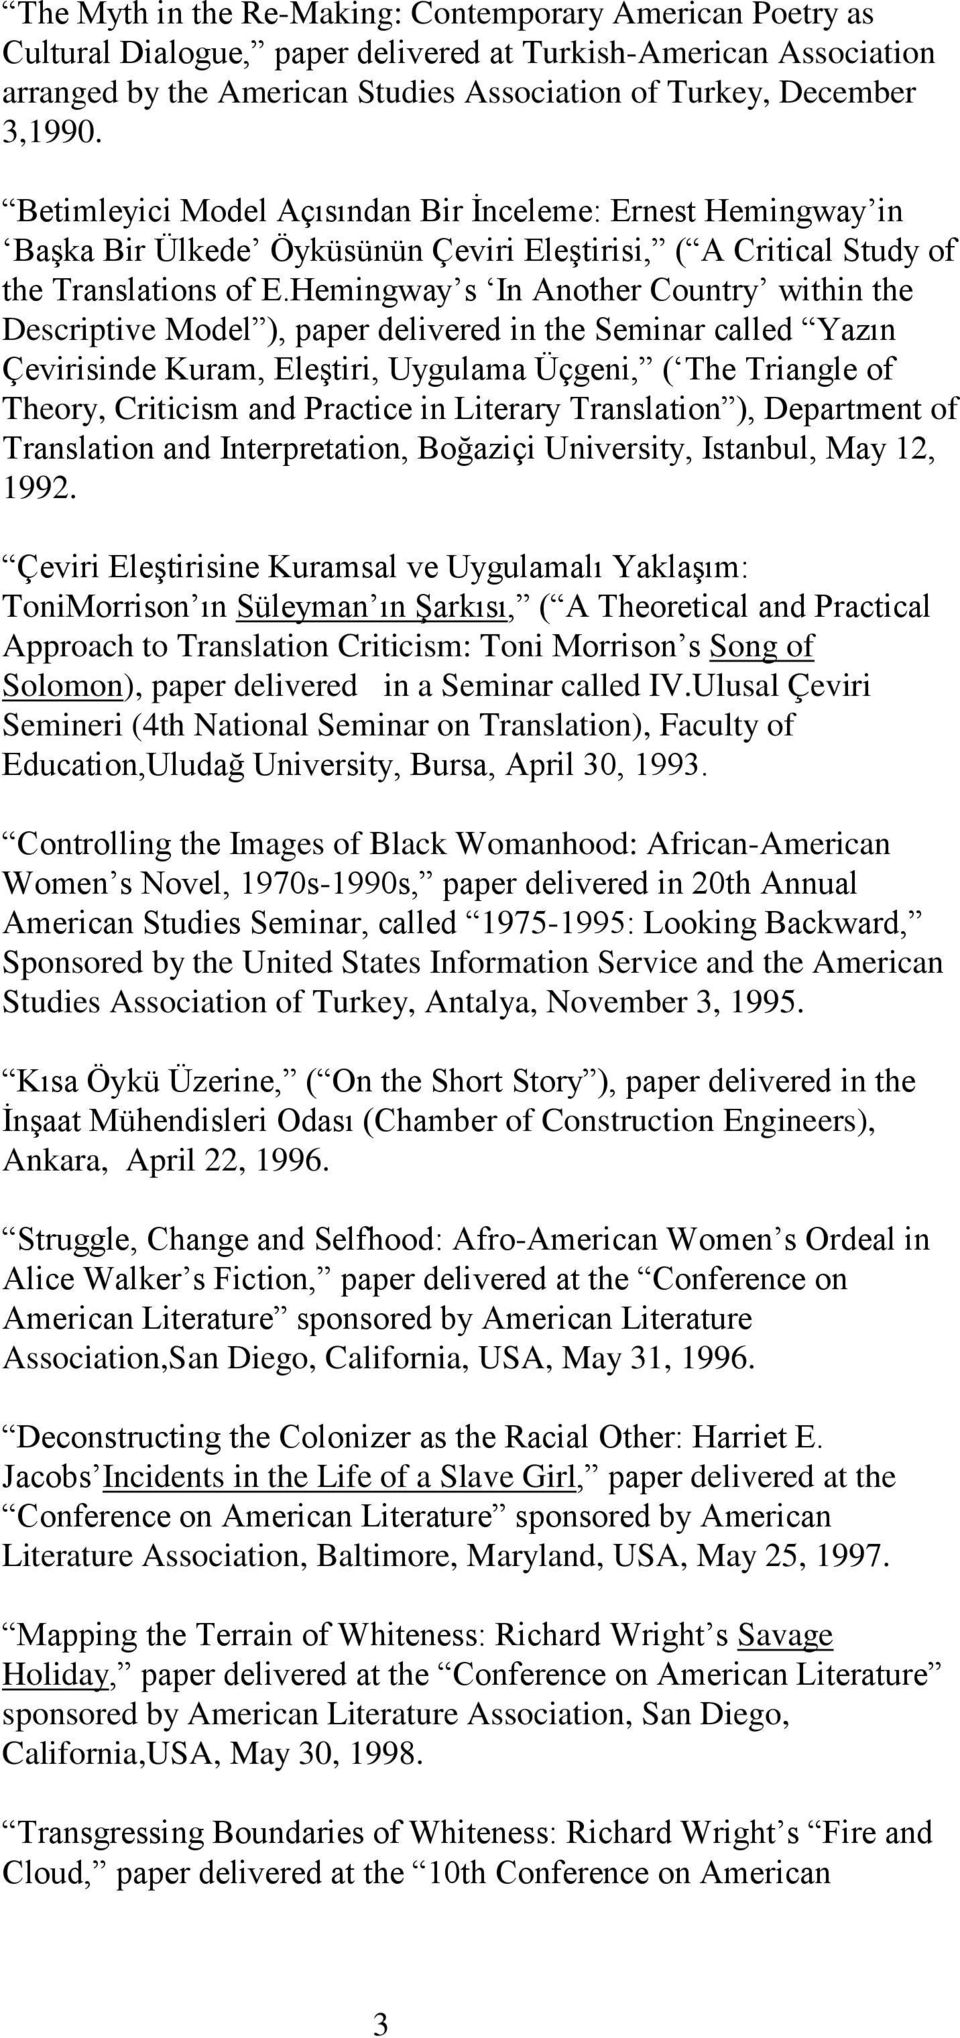 Hemingway s In Another Country within the Descriptive Model ), paper delivered in the Seminar called Yazın Çevirisinde Kuram, Eleştiri, Uygulama Üçgeni, ( The Triangle of Theory, Criticism and